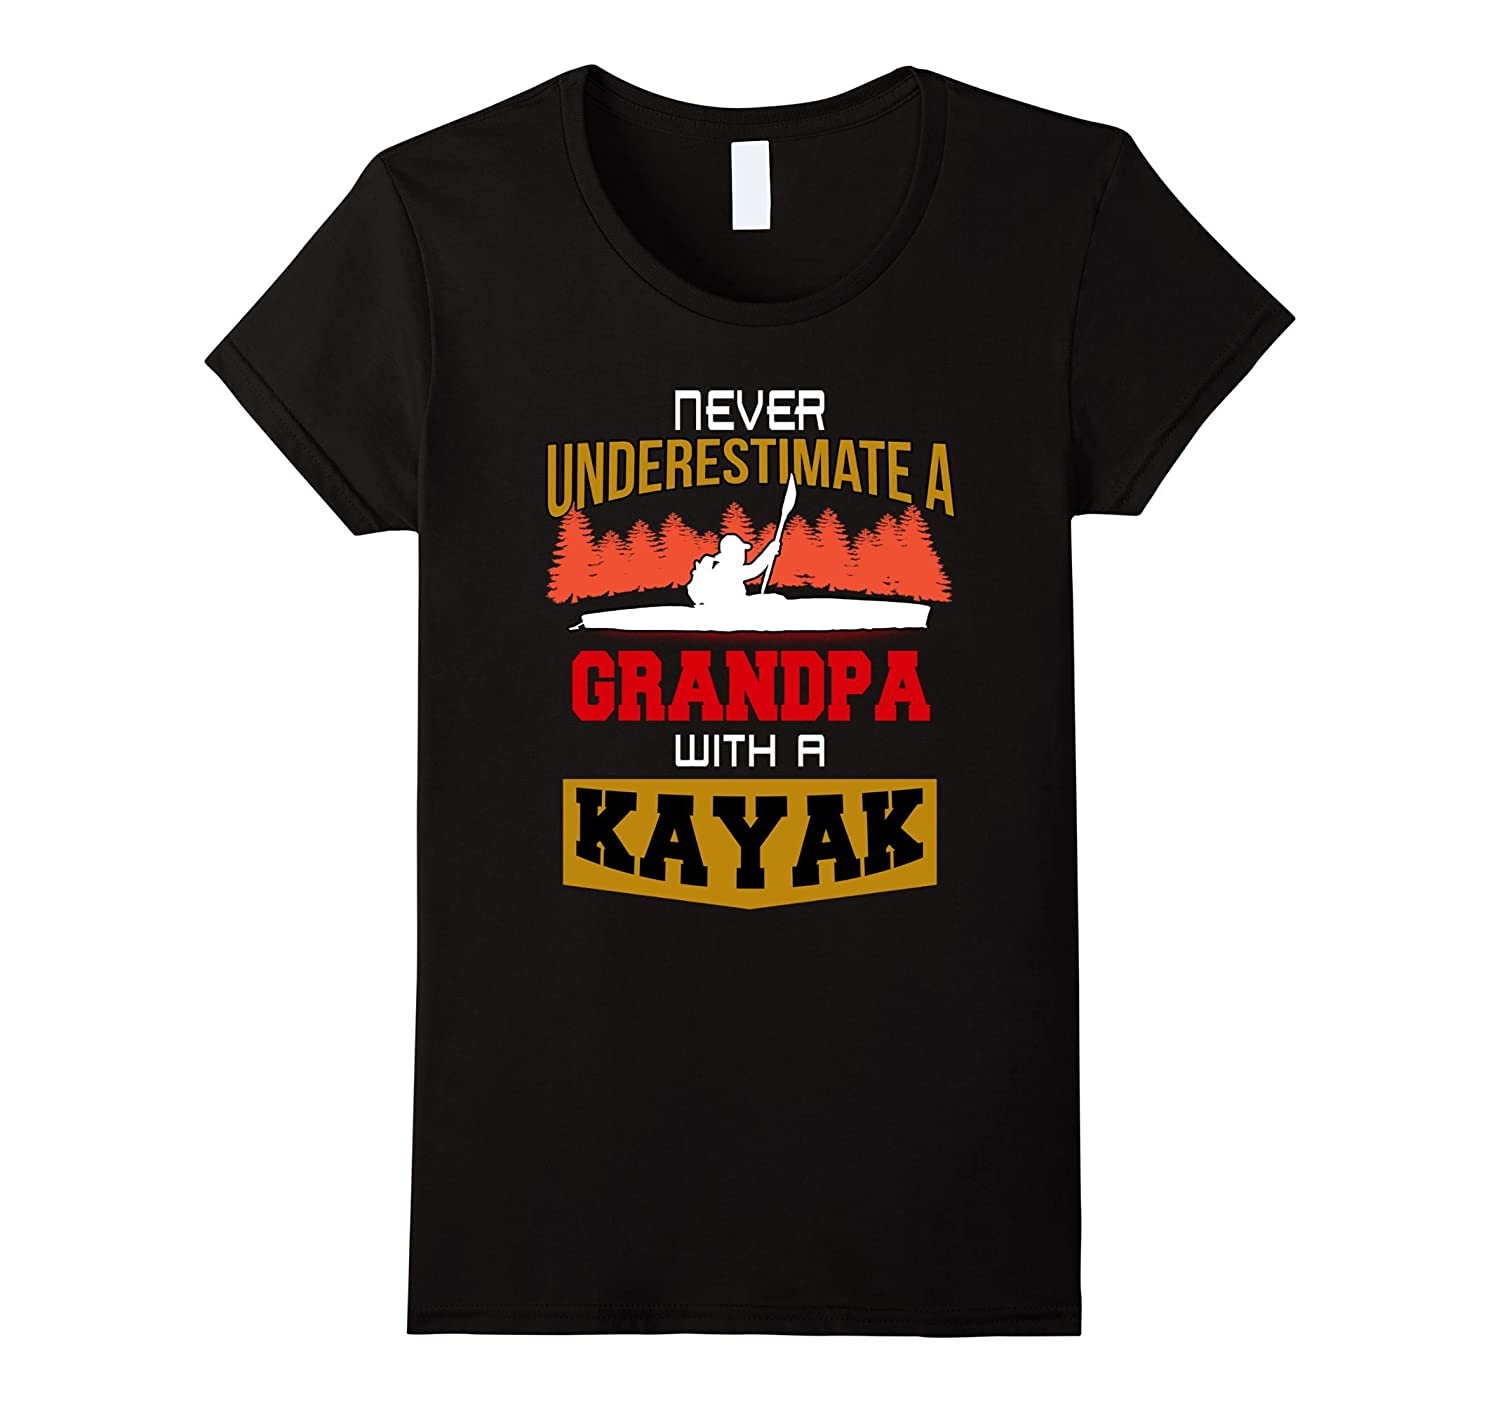 Never Underestimate a grandpa with a kayak T-shirt